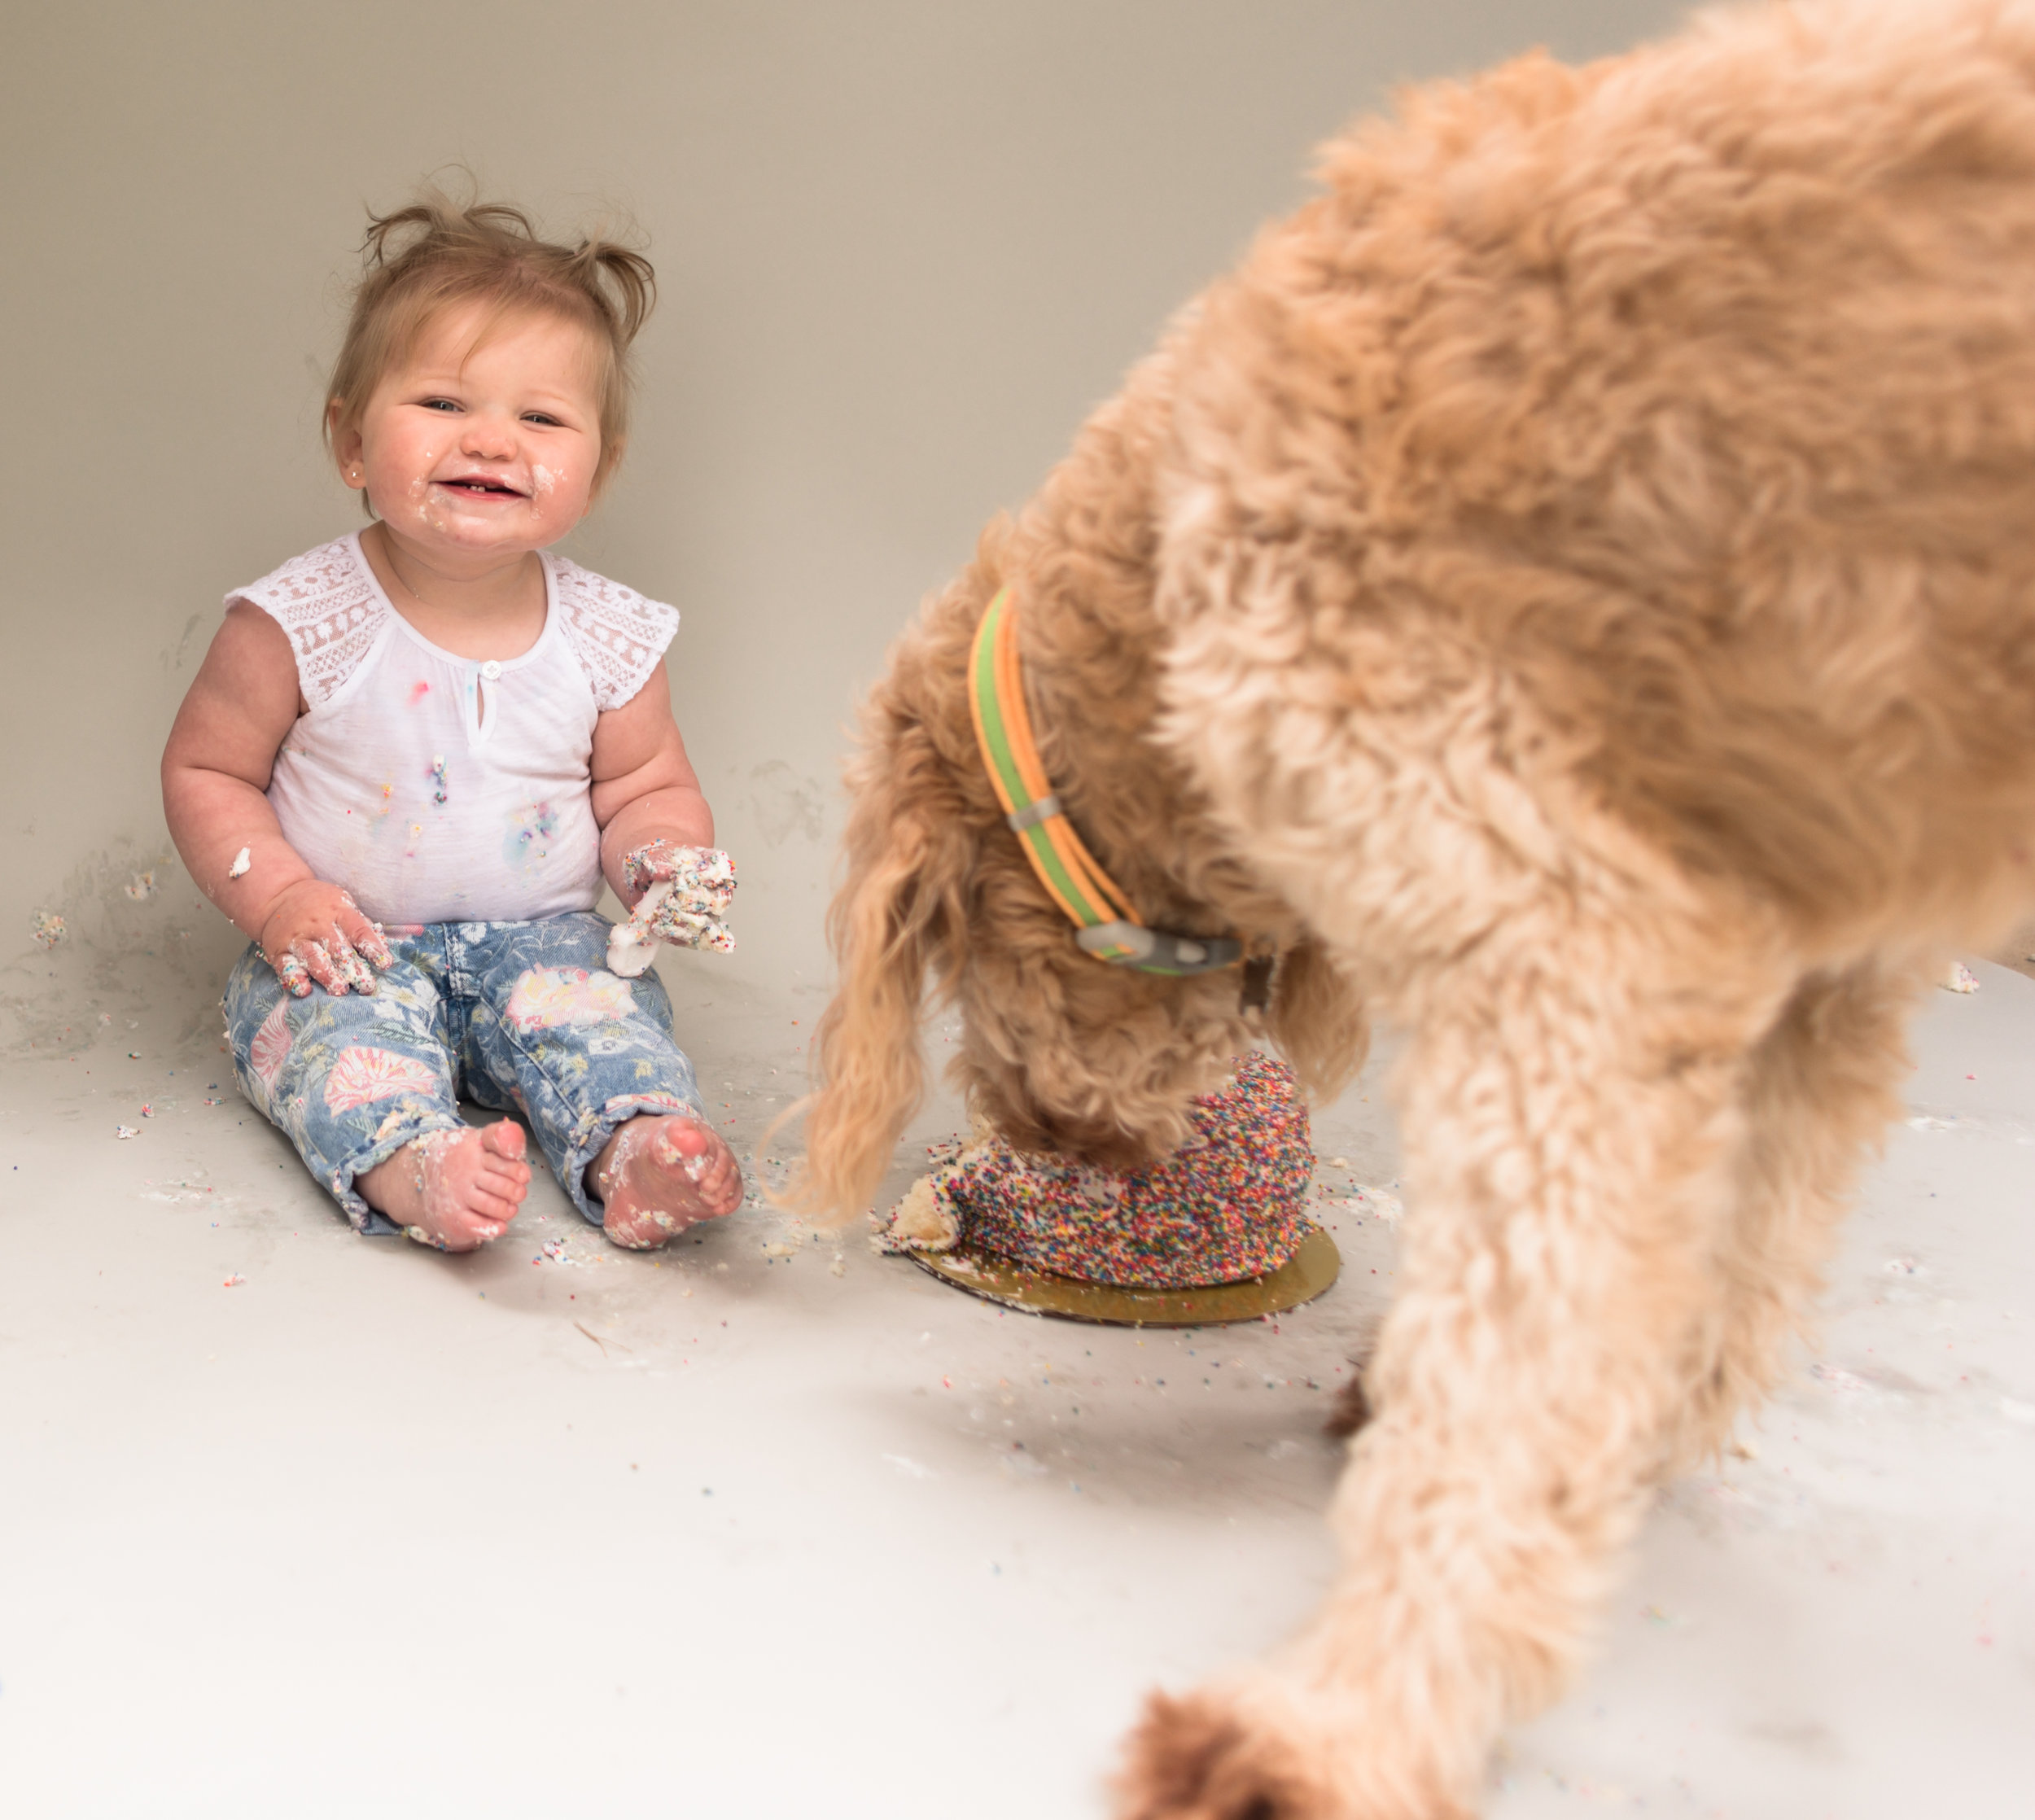 Milestone Photo Session: Cake Smash (with dog)